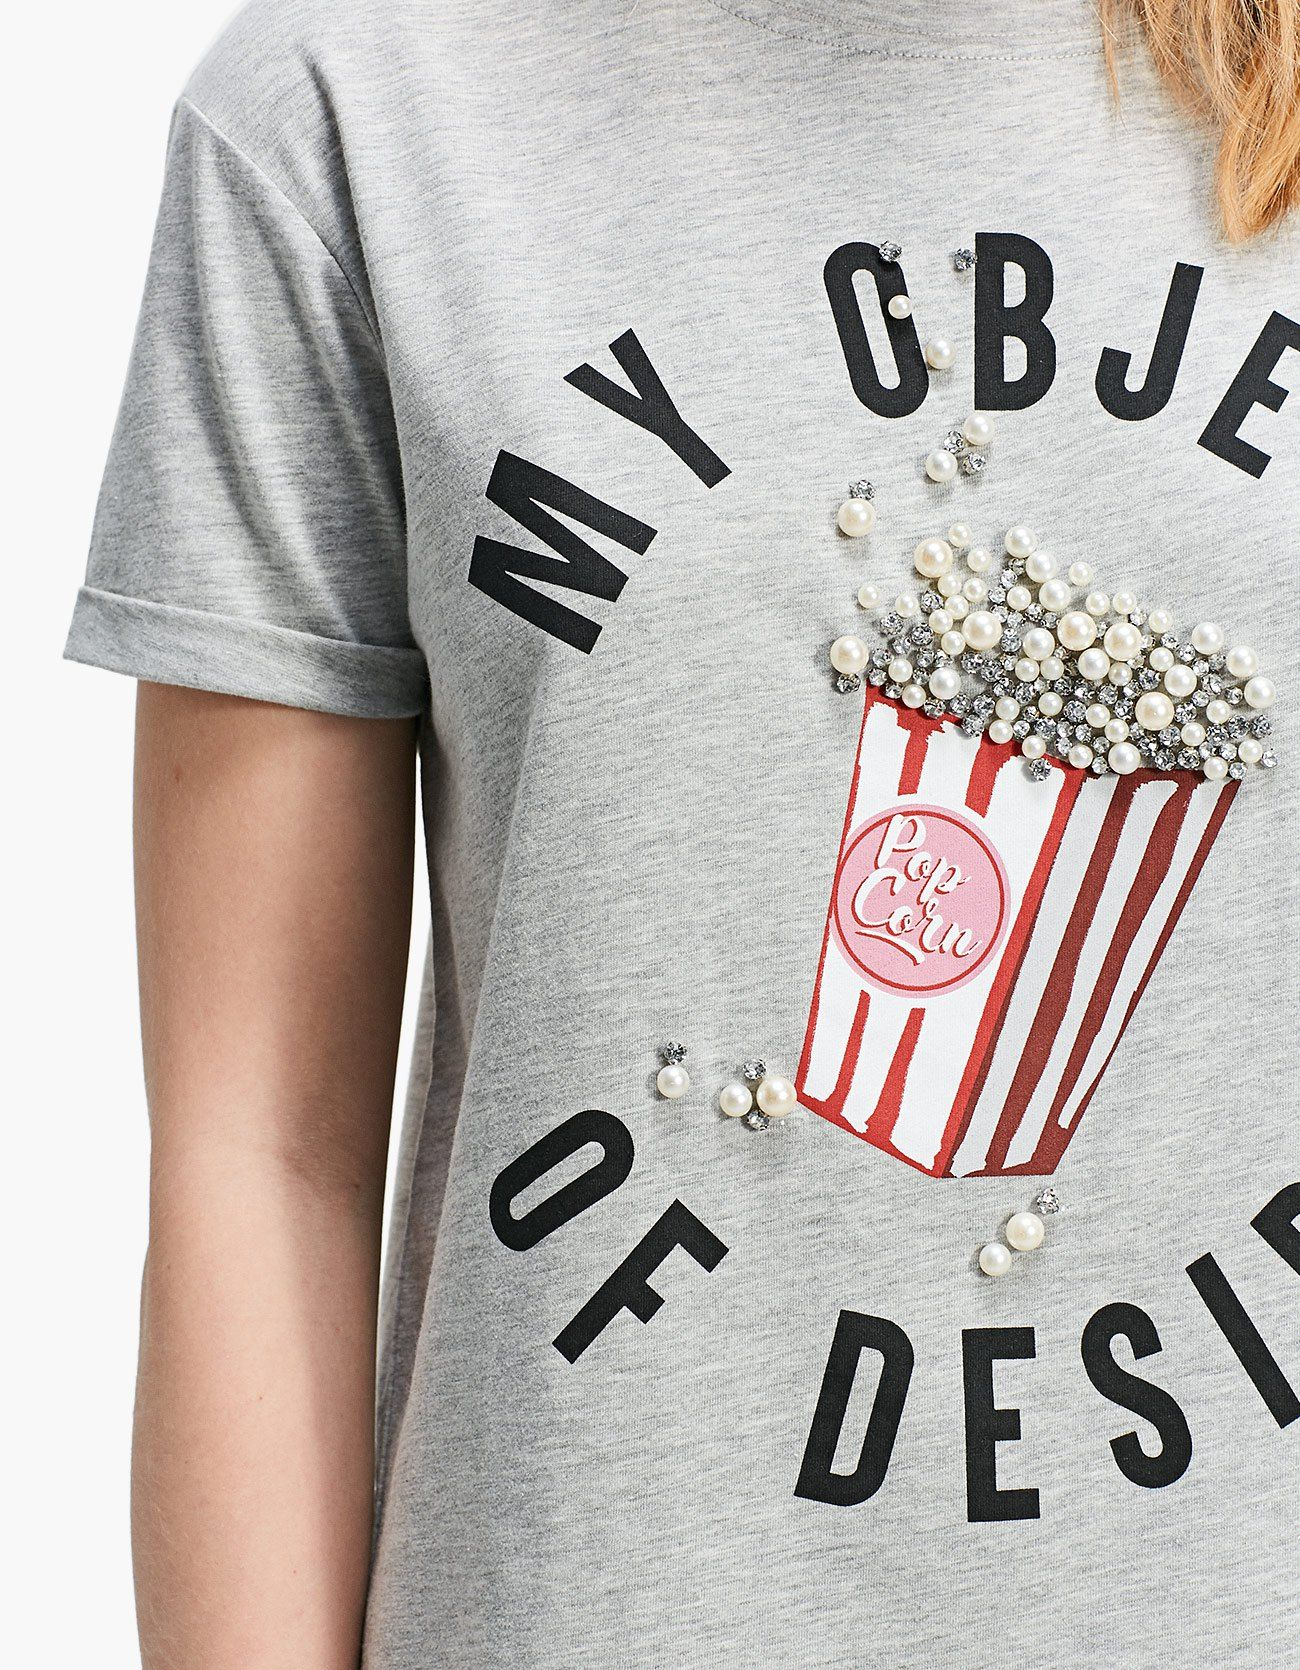 1bba7aa474 Popcorn T-shirt with gem appliqués - T-shirts | Stradivarius Sweden ...